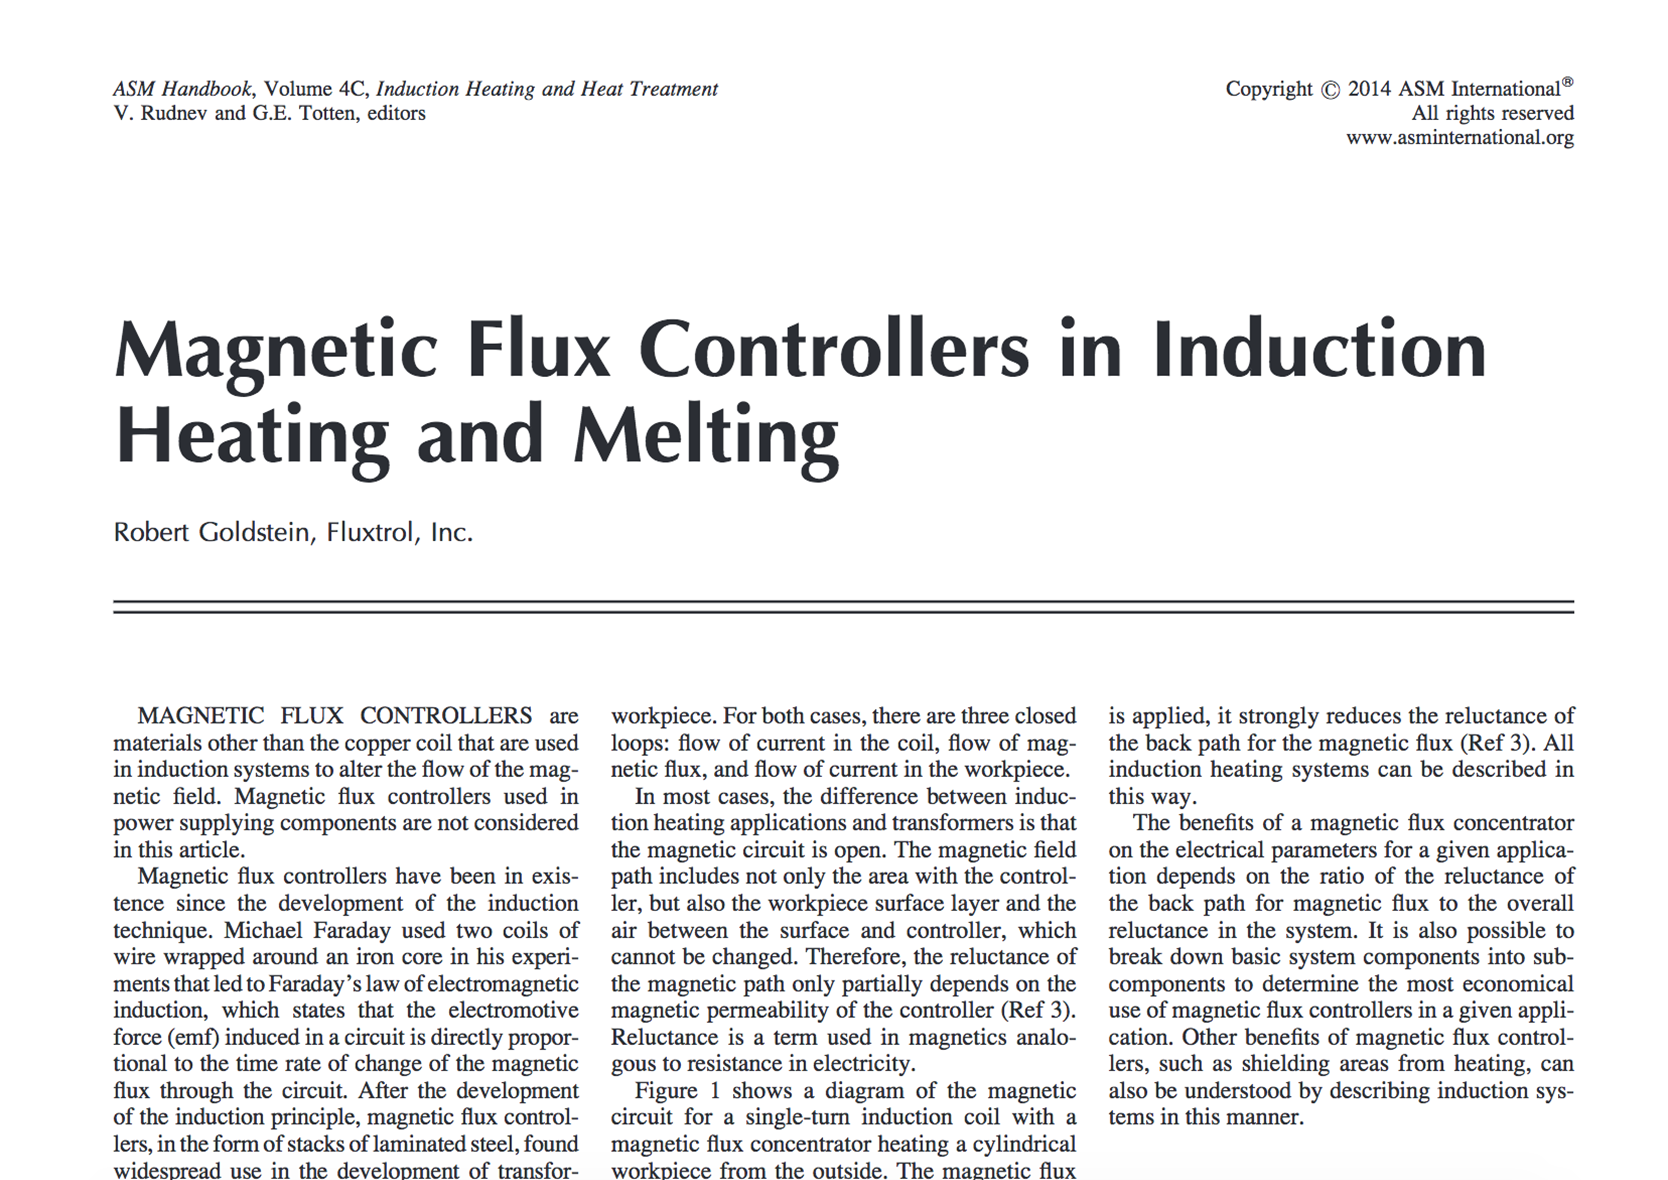 Fluxtrol ASM 2014 Magnetic flux Controllers in Induction Heating and Melting